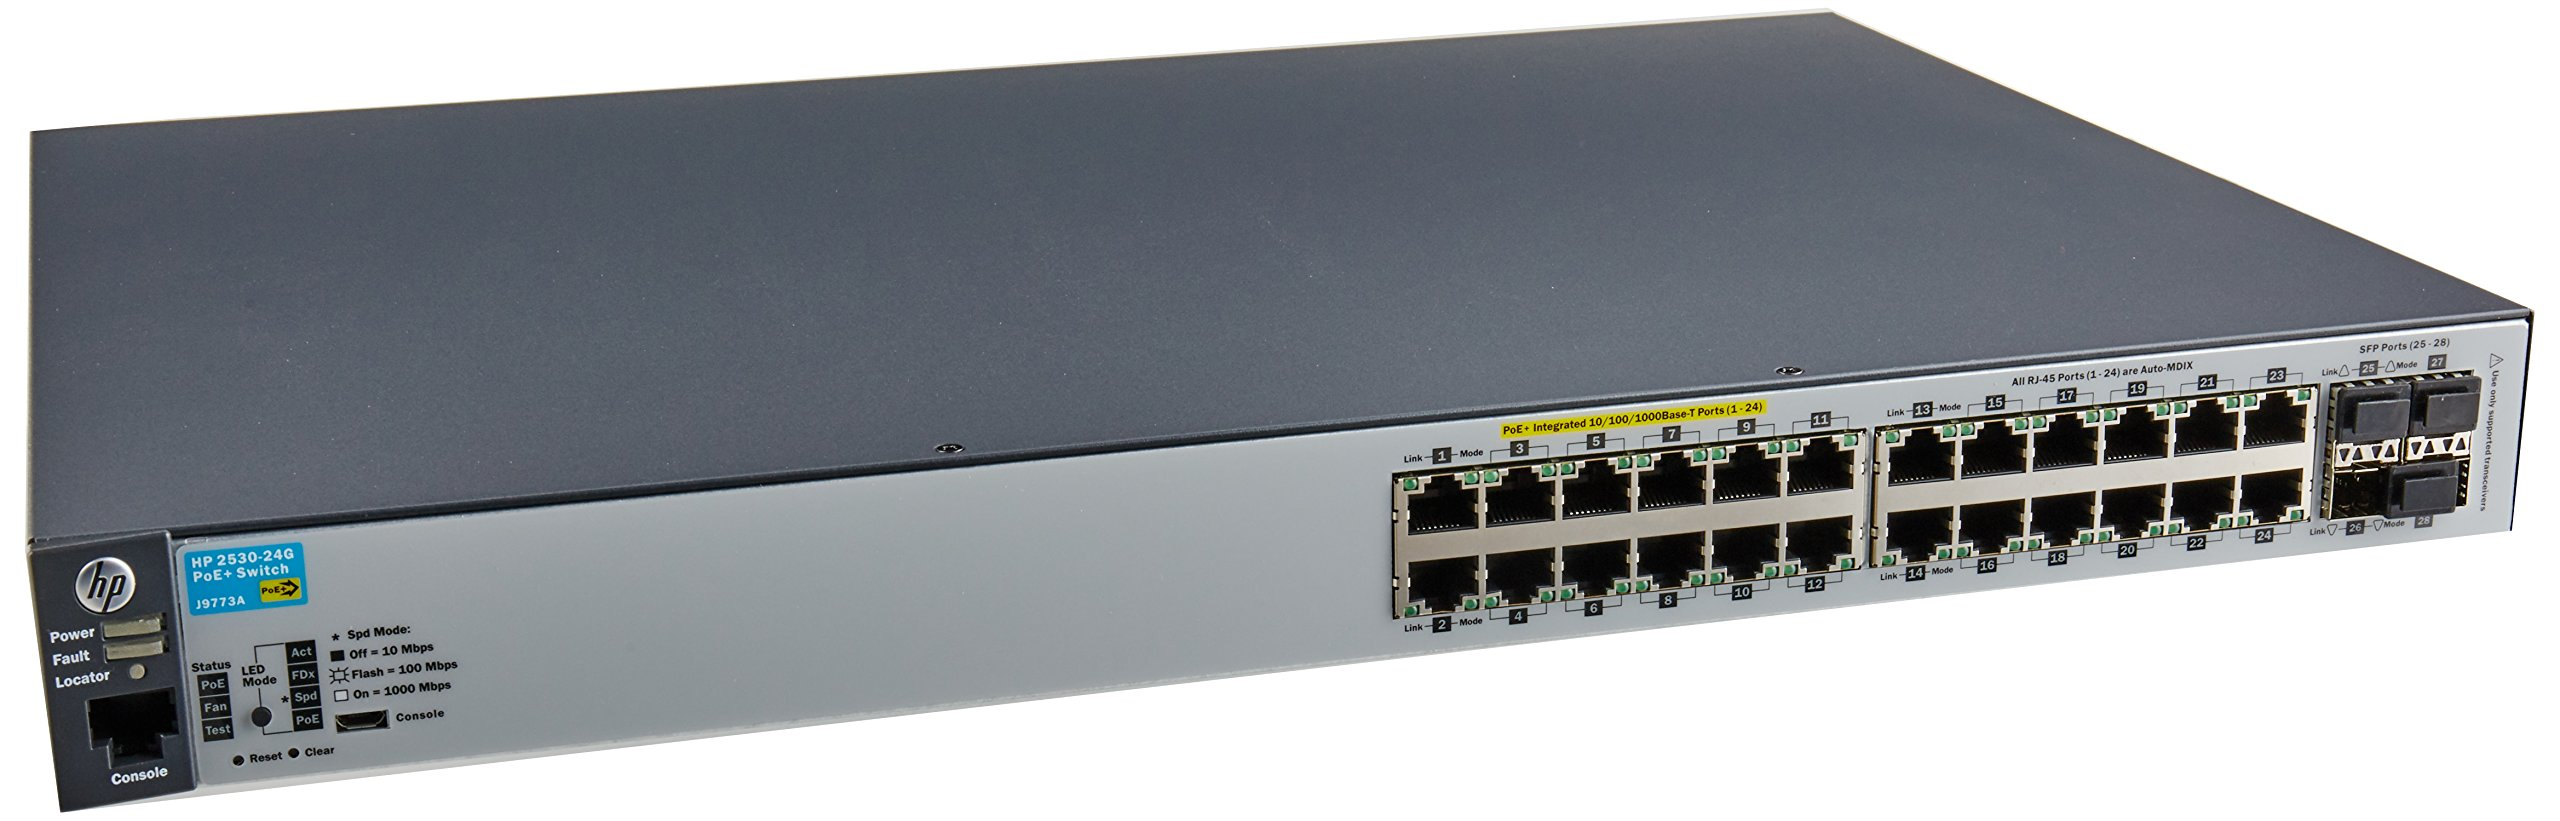 HP J9773AHP 2530-24G-PoE+ Switch by HP